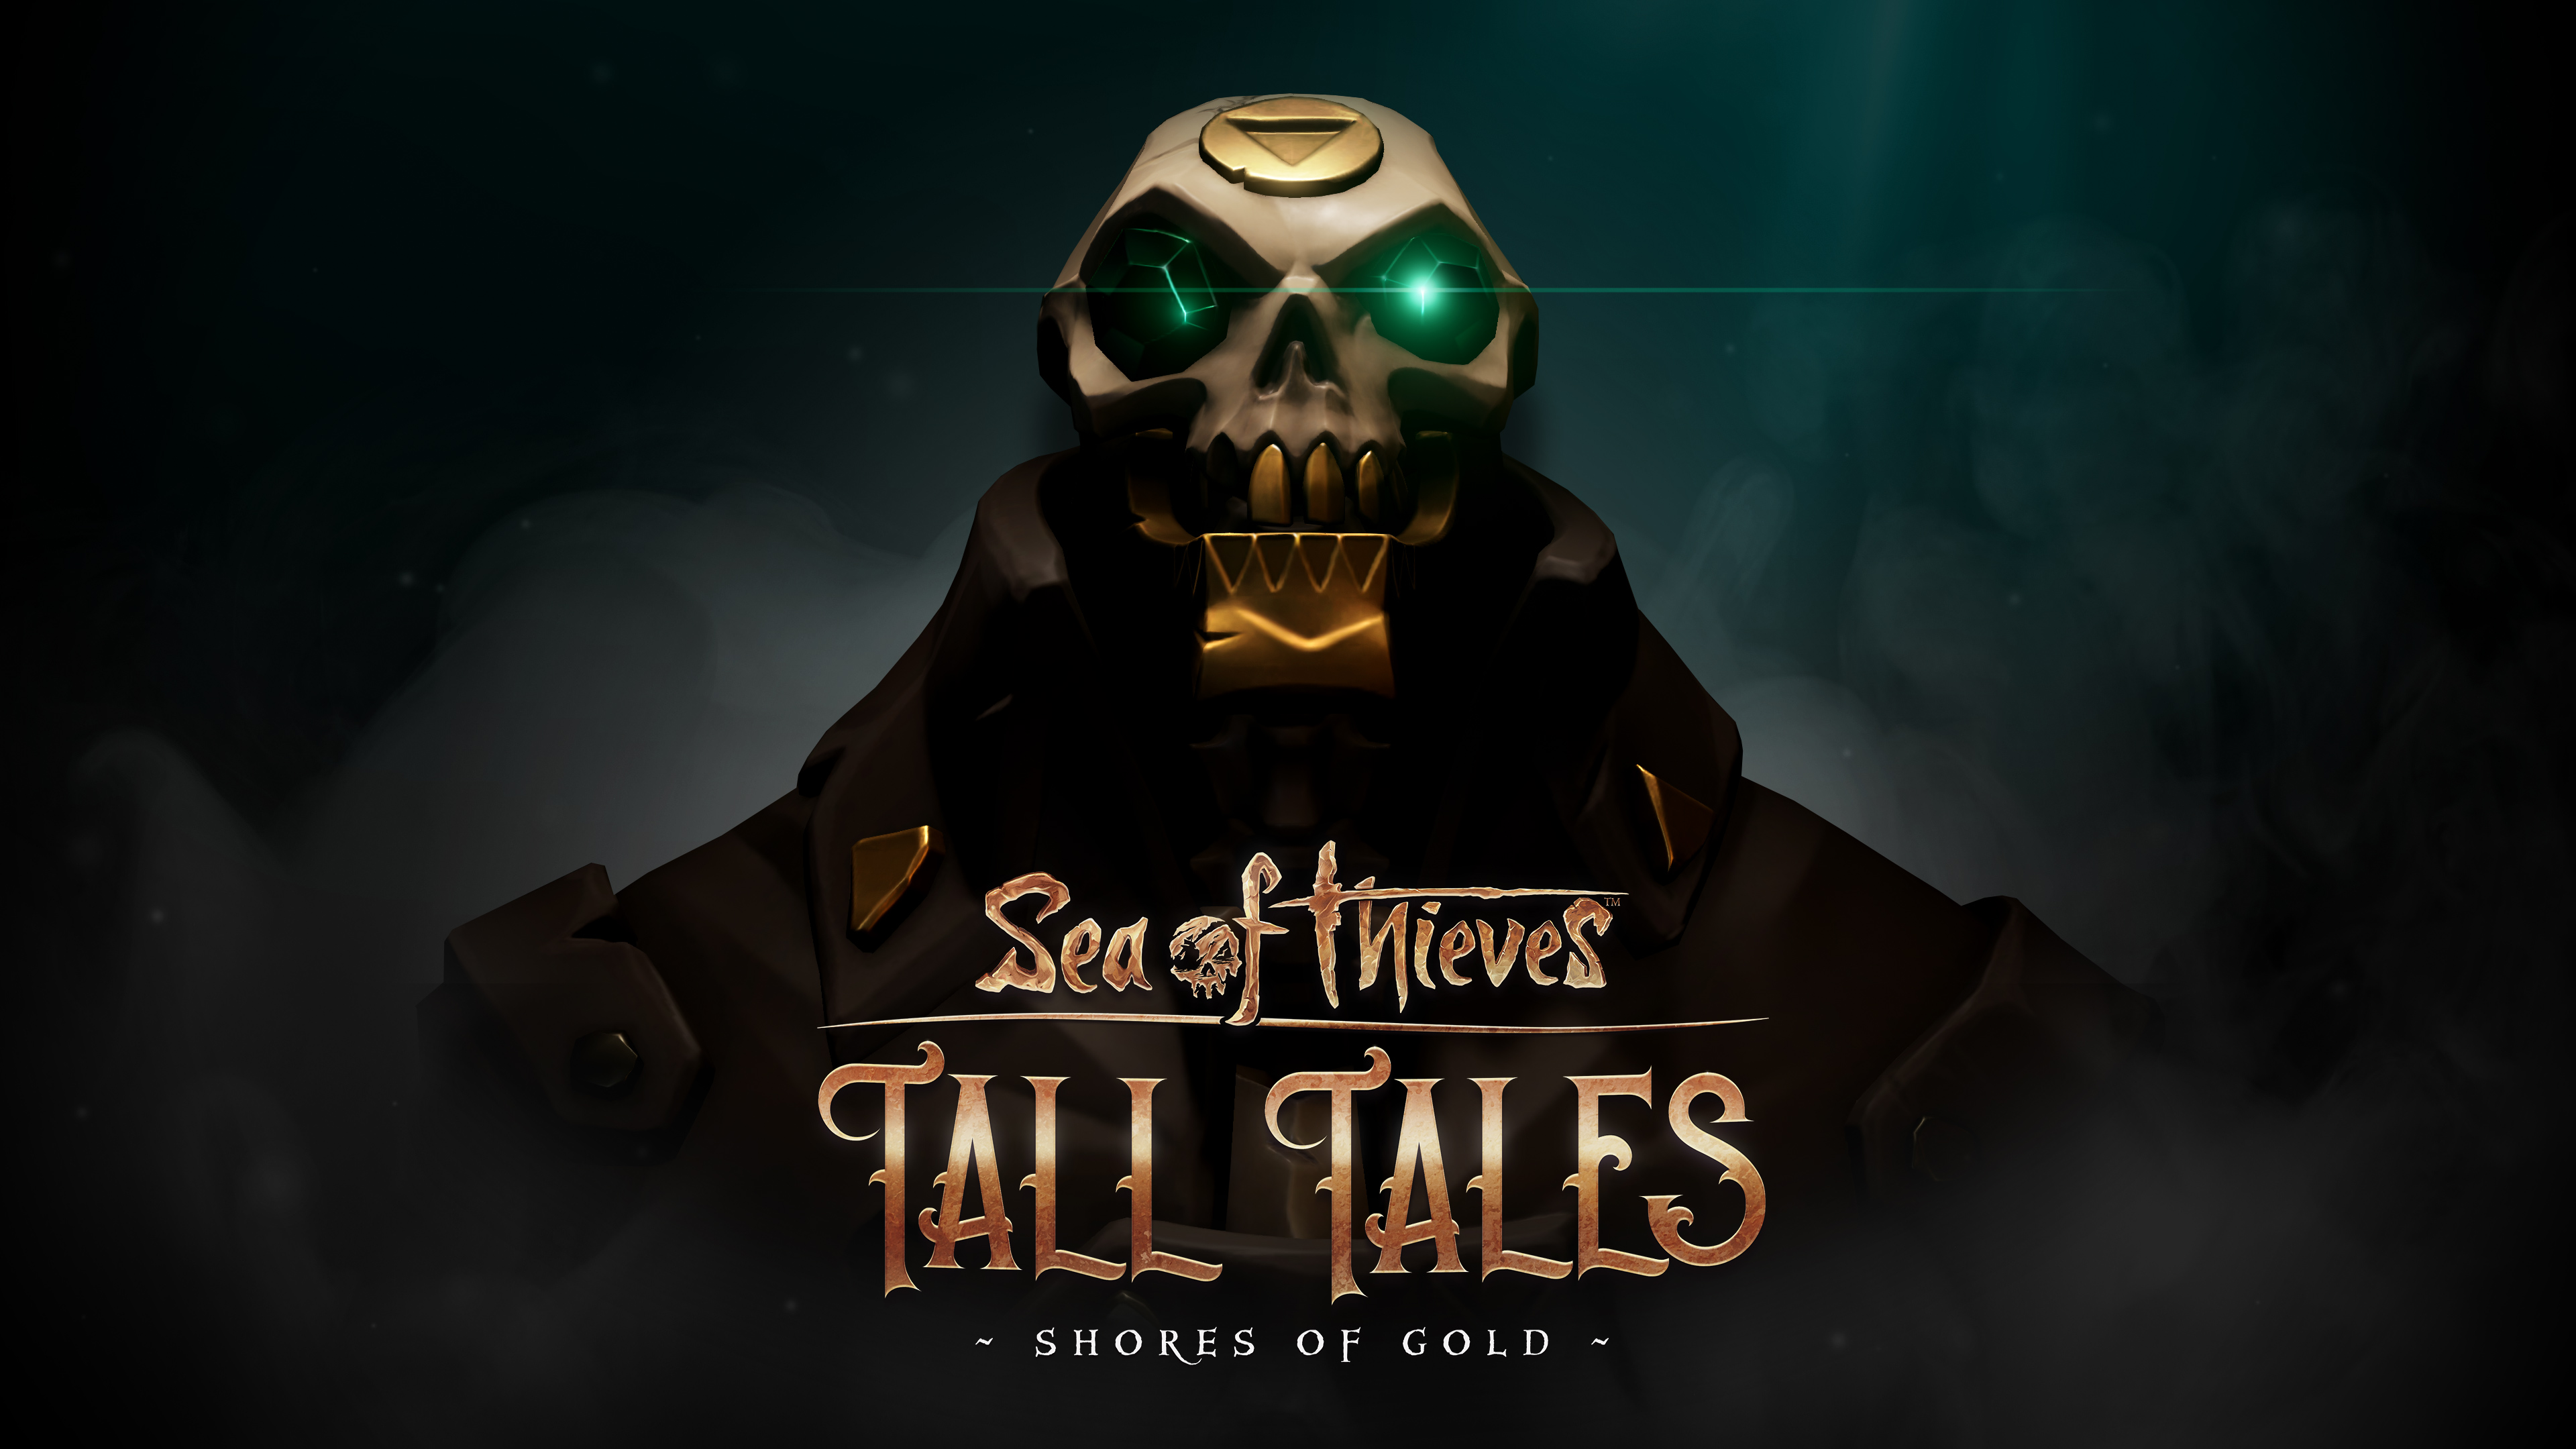 Sea Of Thieves Tall Tales Hd Games 4k Wallpapers Images